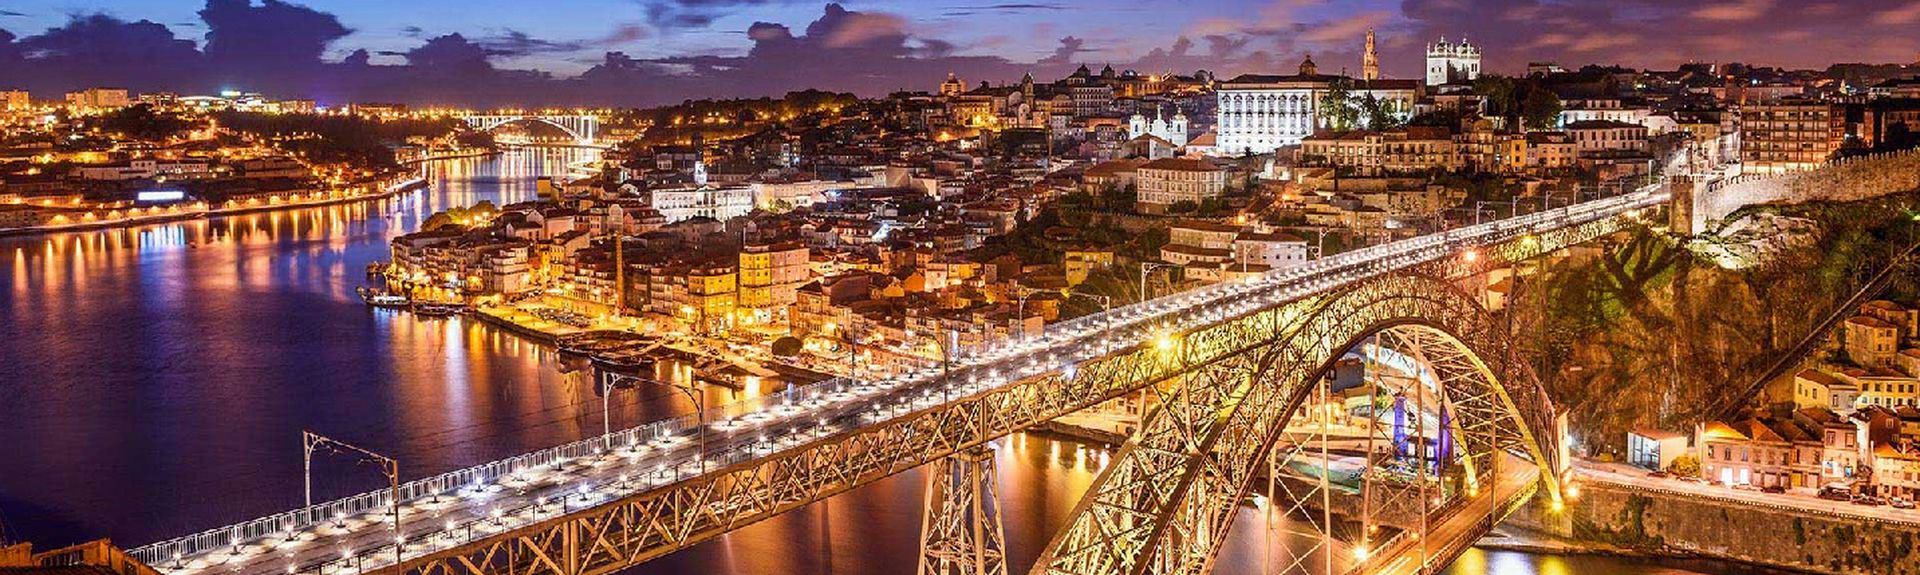 Bonfim, Porto, Porto District, Portugal